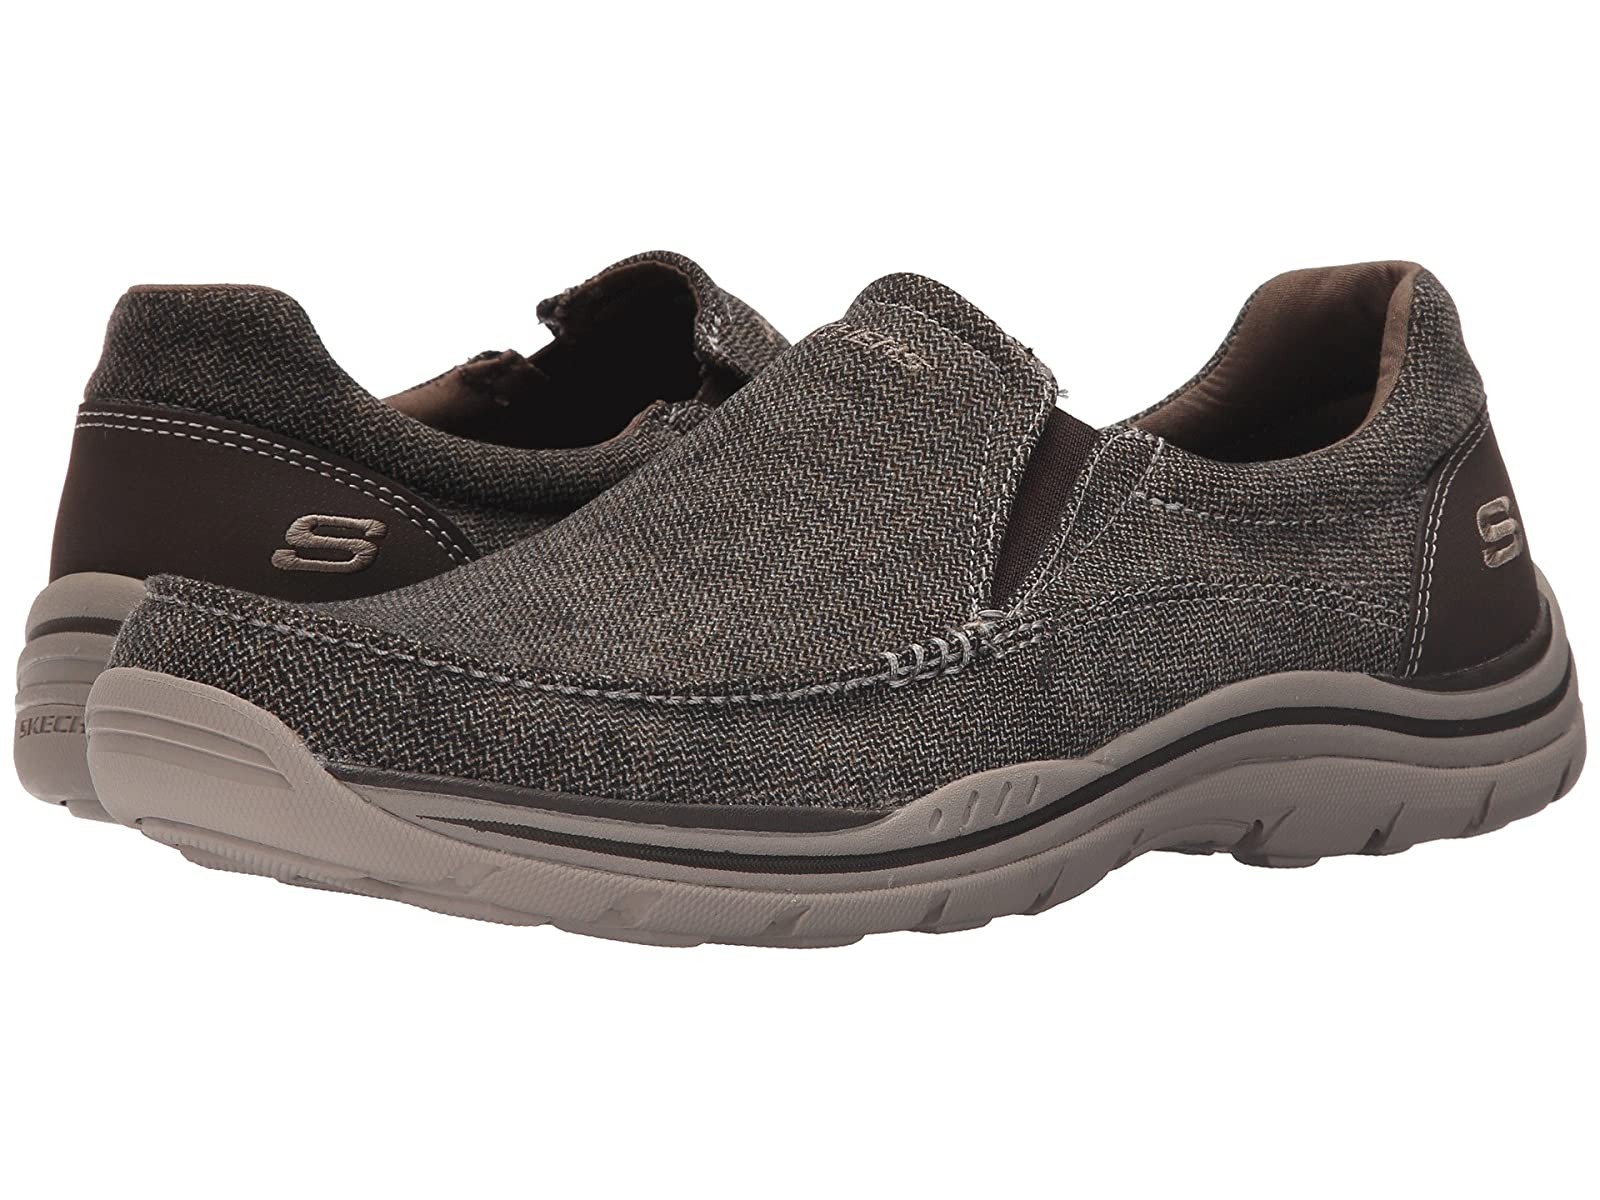 SKECHERS Expected - AvilloCheap and distinctive eye-catching shoes